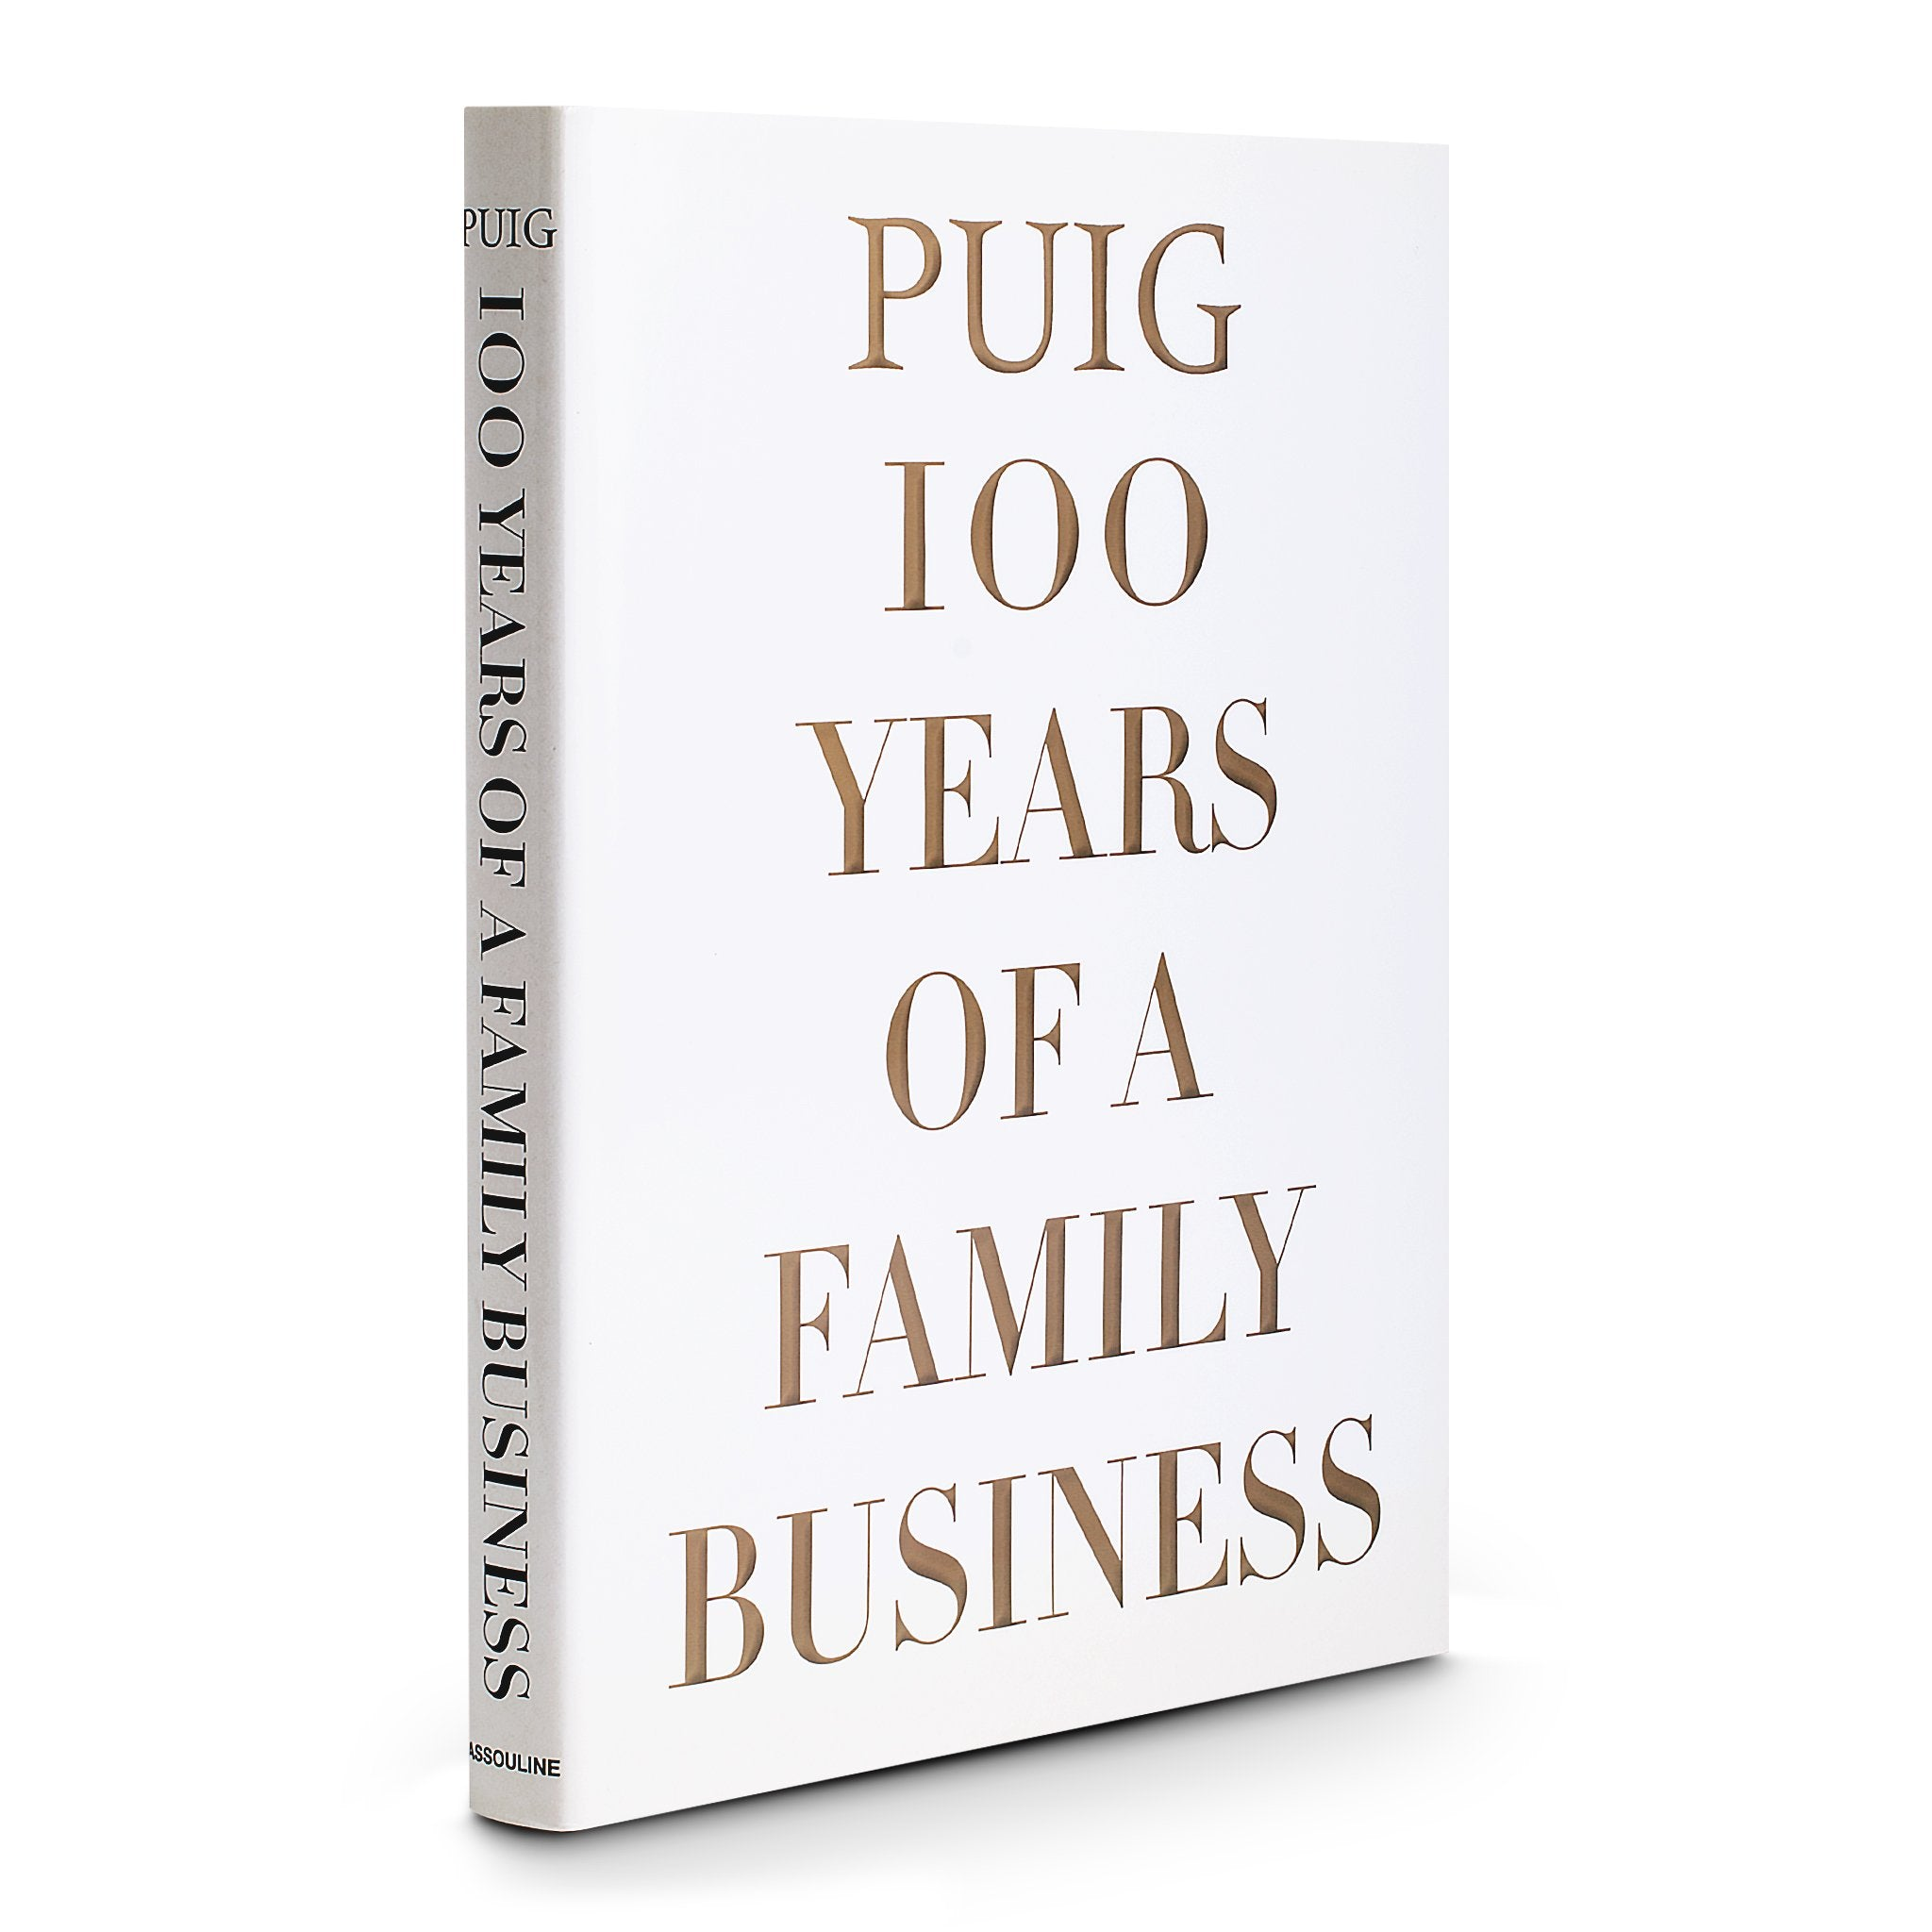 Puig, 100 Years of a Family Business